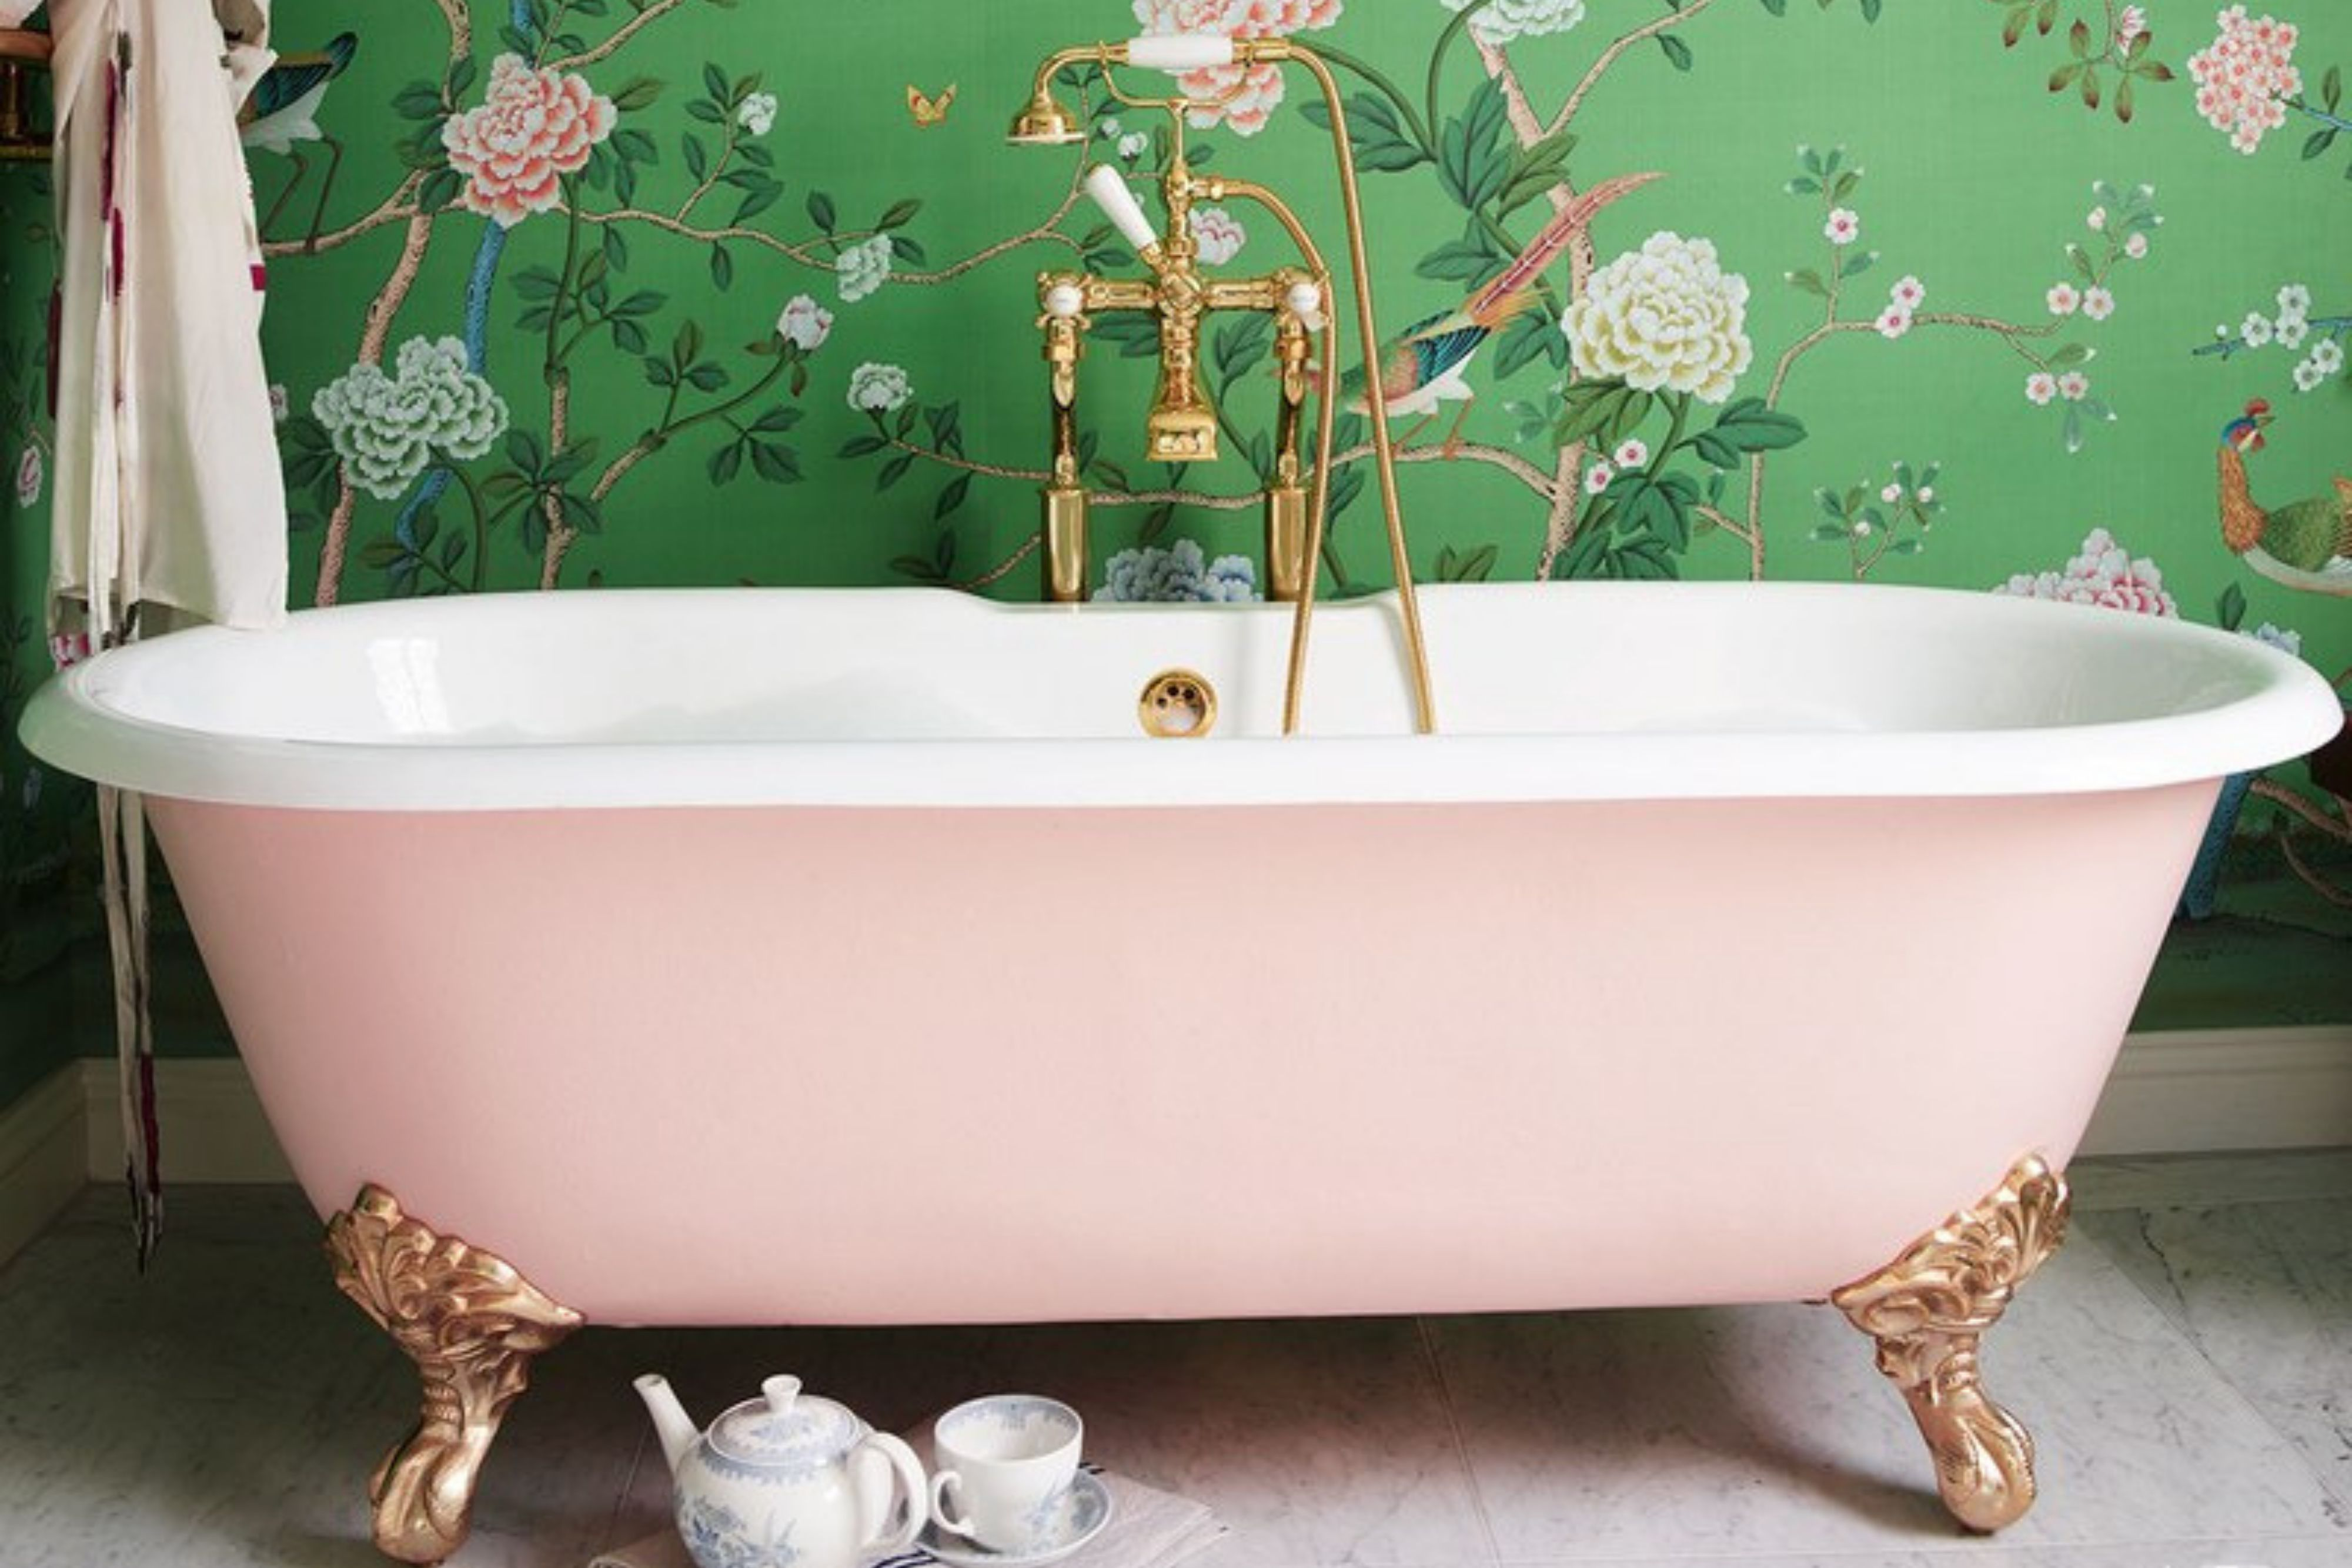 Vintage Claw-Foot Tubs (With images) | Clawfoot tub, Pink ...